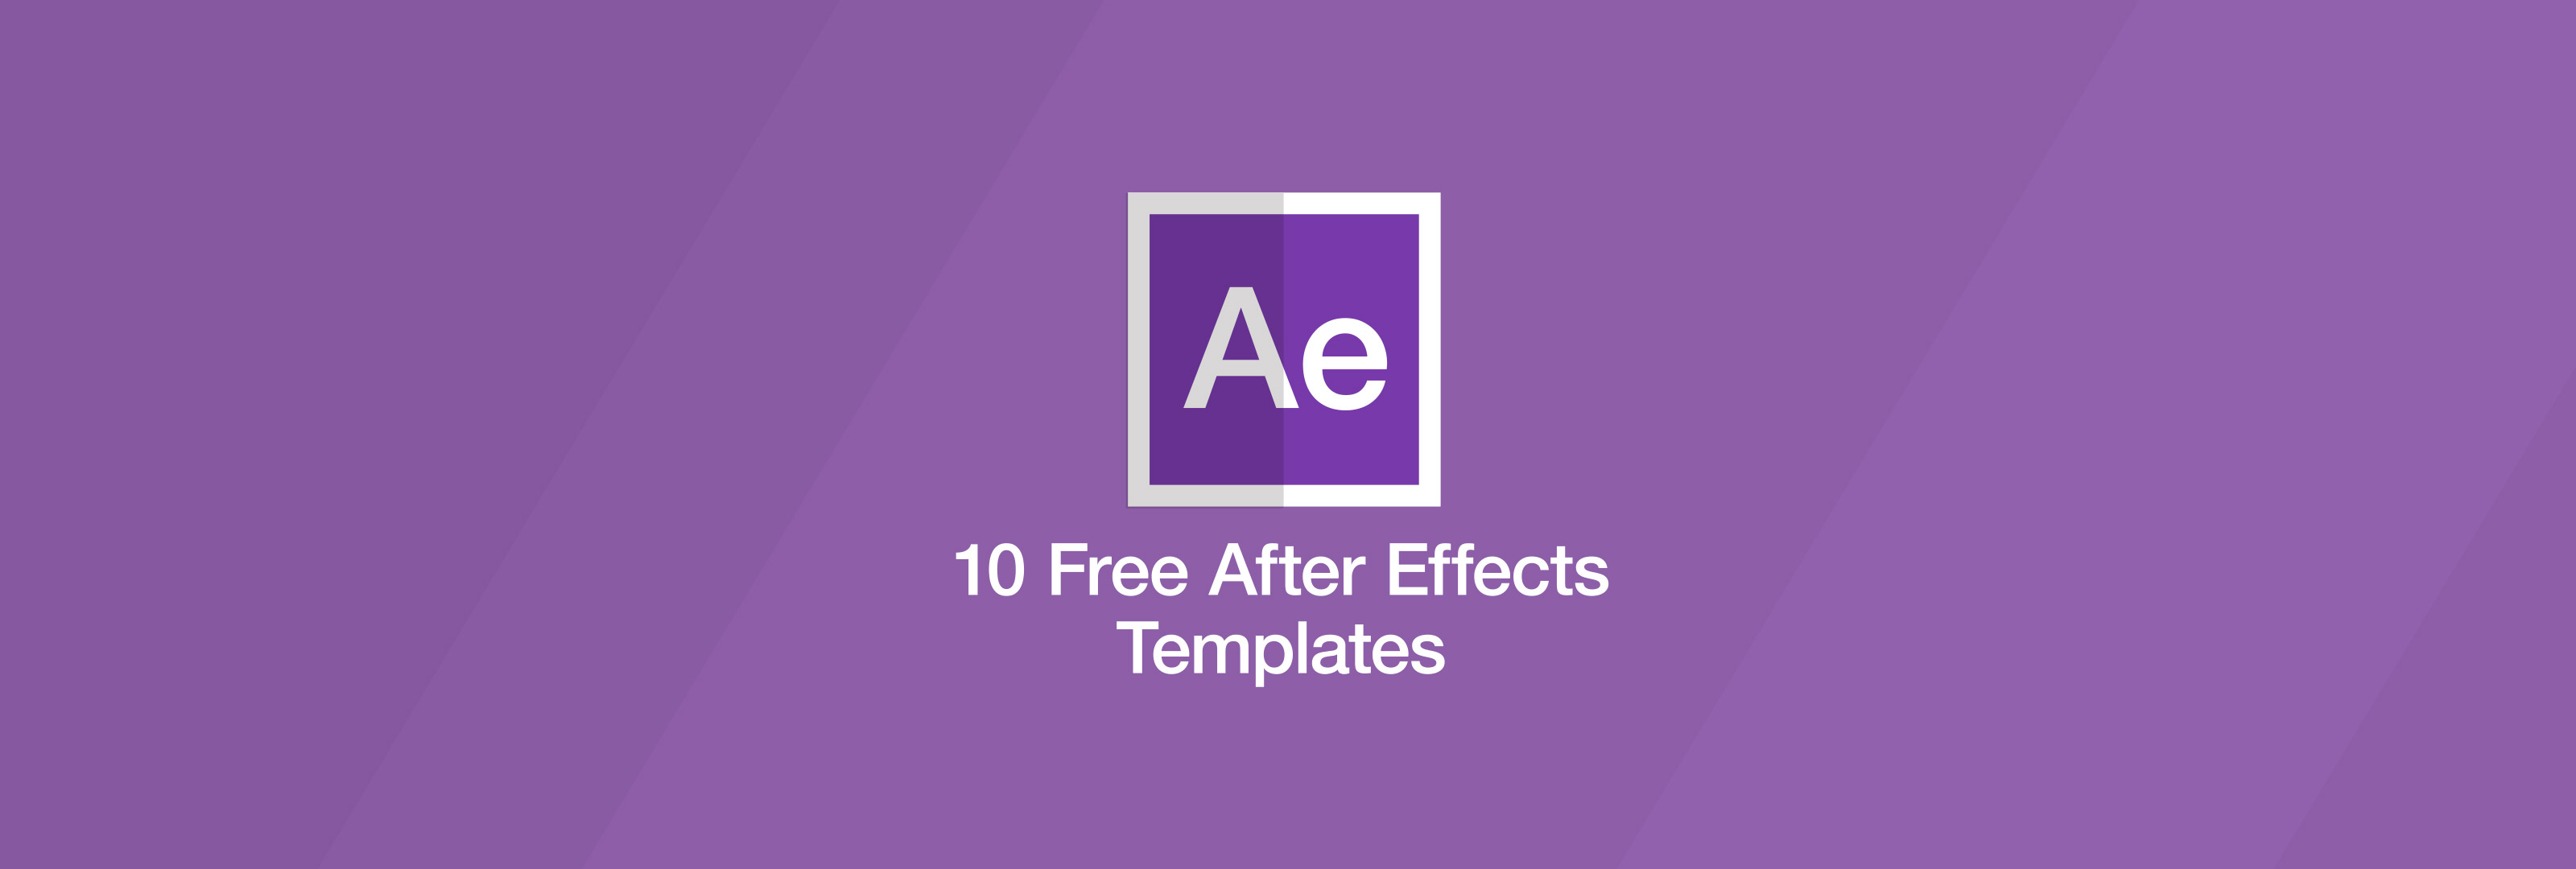 after templates free - hola.klonec.co, Presentation After Effects Template Free, Presentation templates